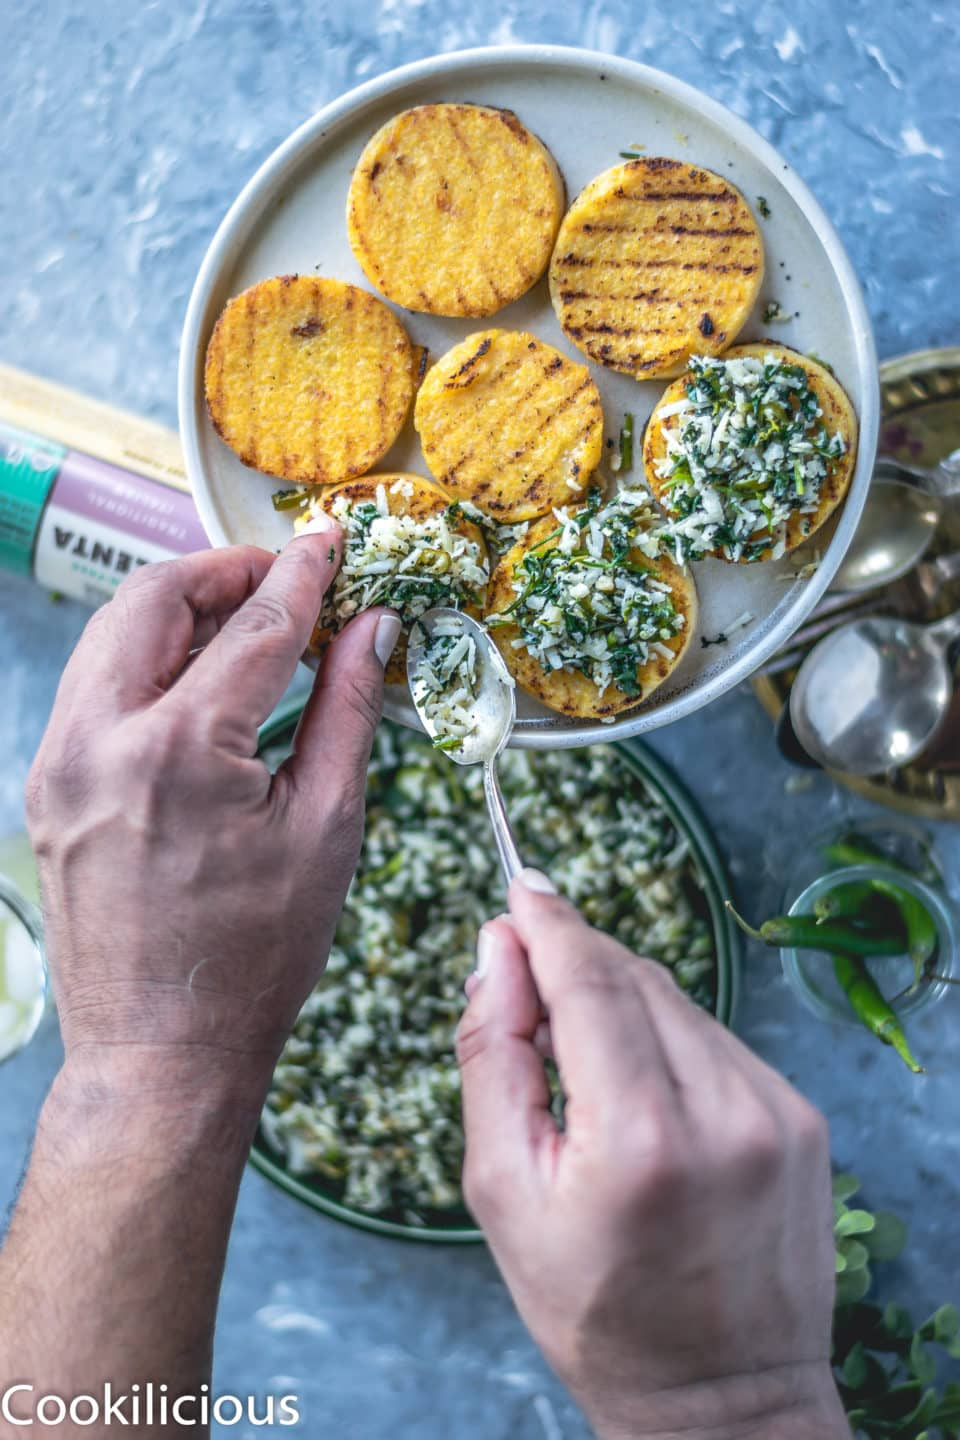 a set of hands spreading the masala over the grilled polenta (vegan gluten free recipes)